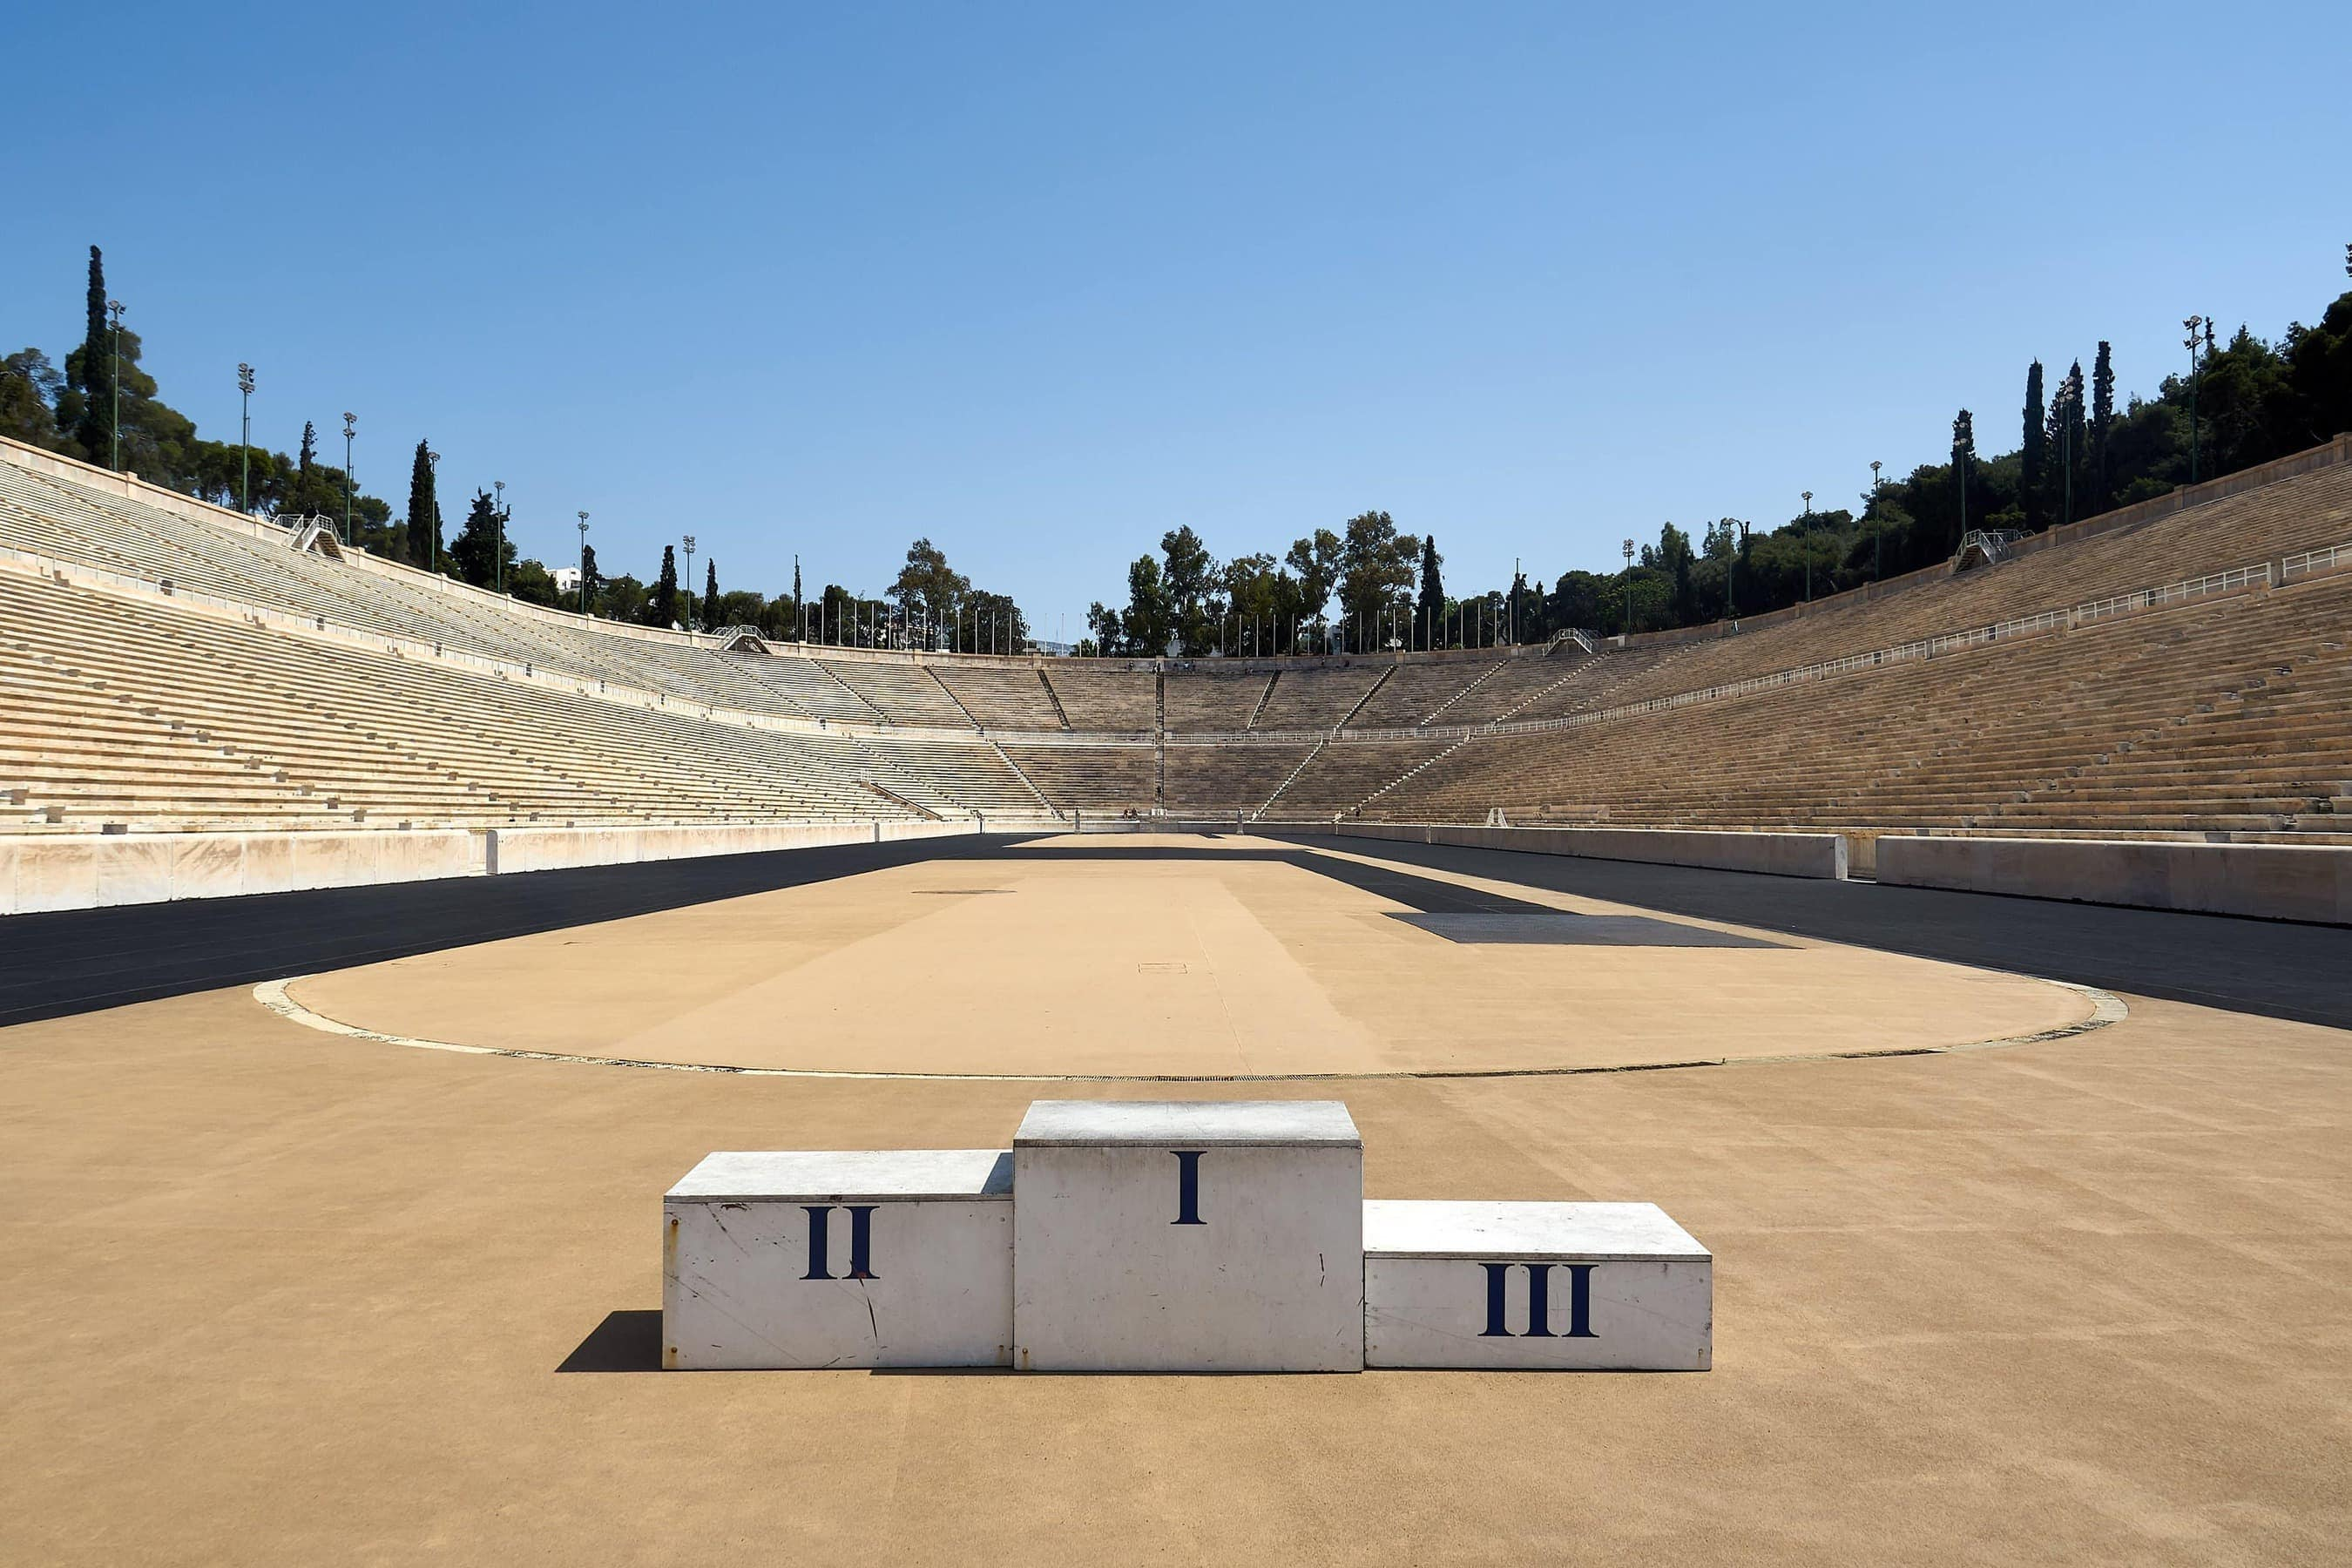 Panathinaiko-Stadion in Athen